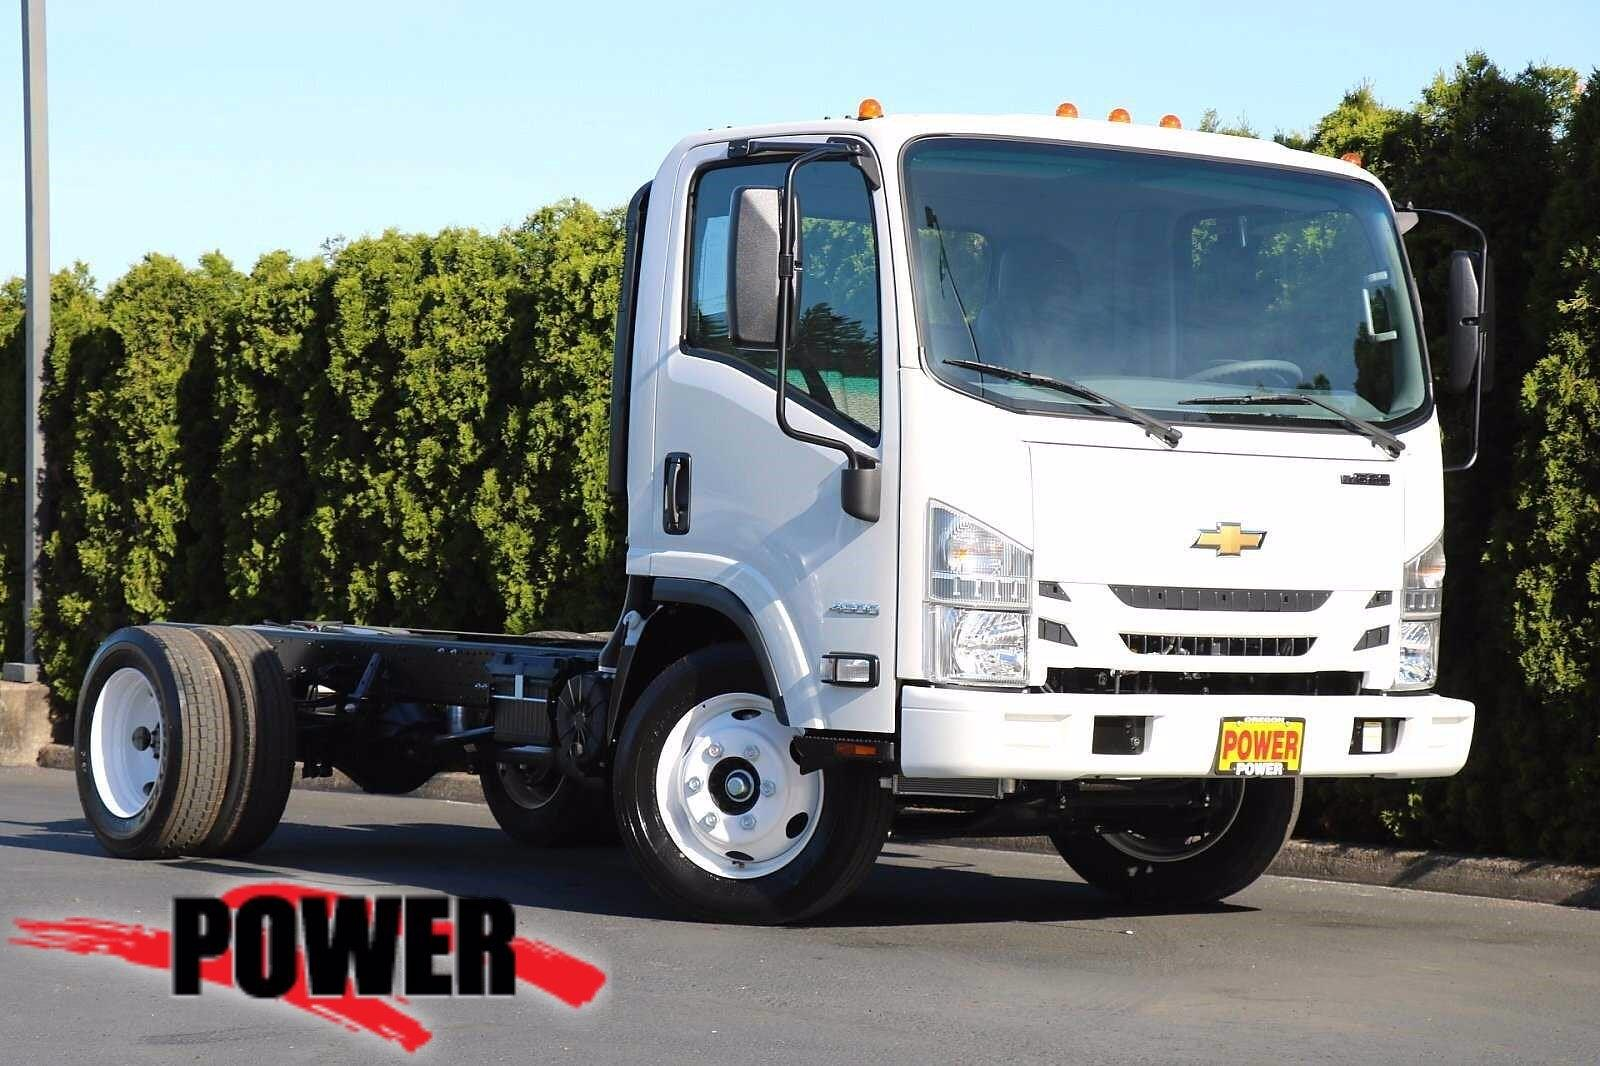 2021 Chevrolet LCF 4500 4x2, Cab Chassis #24375 - photo 1